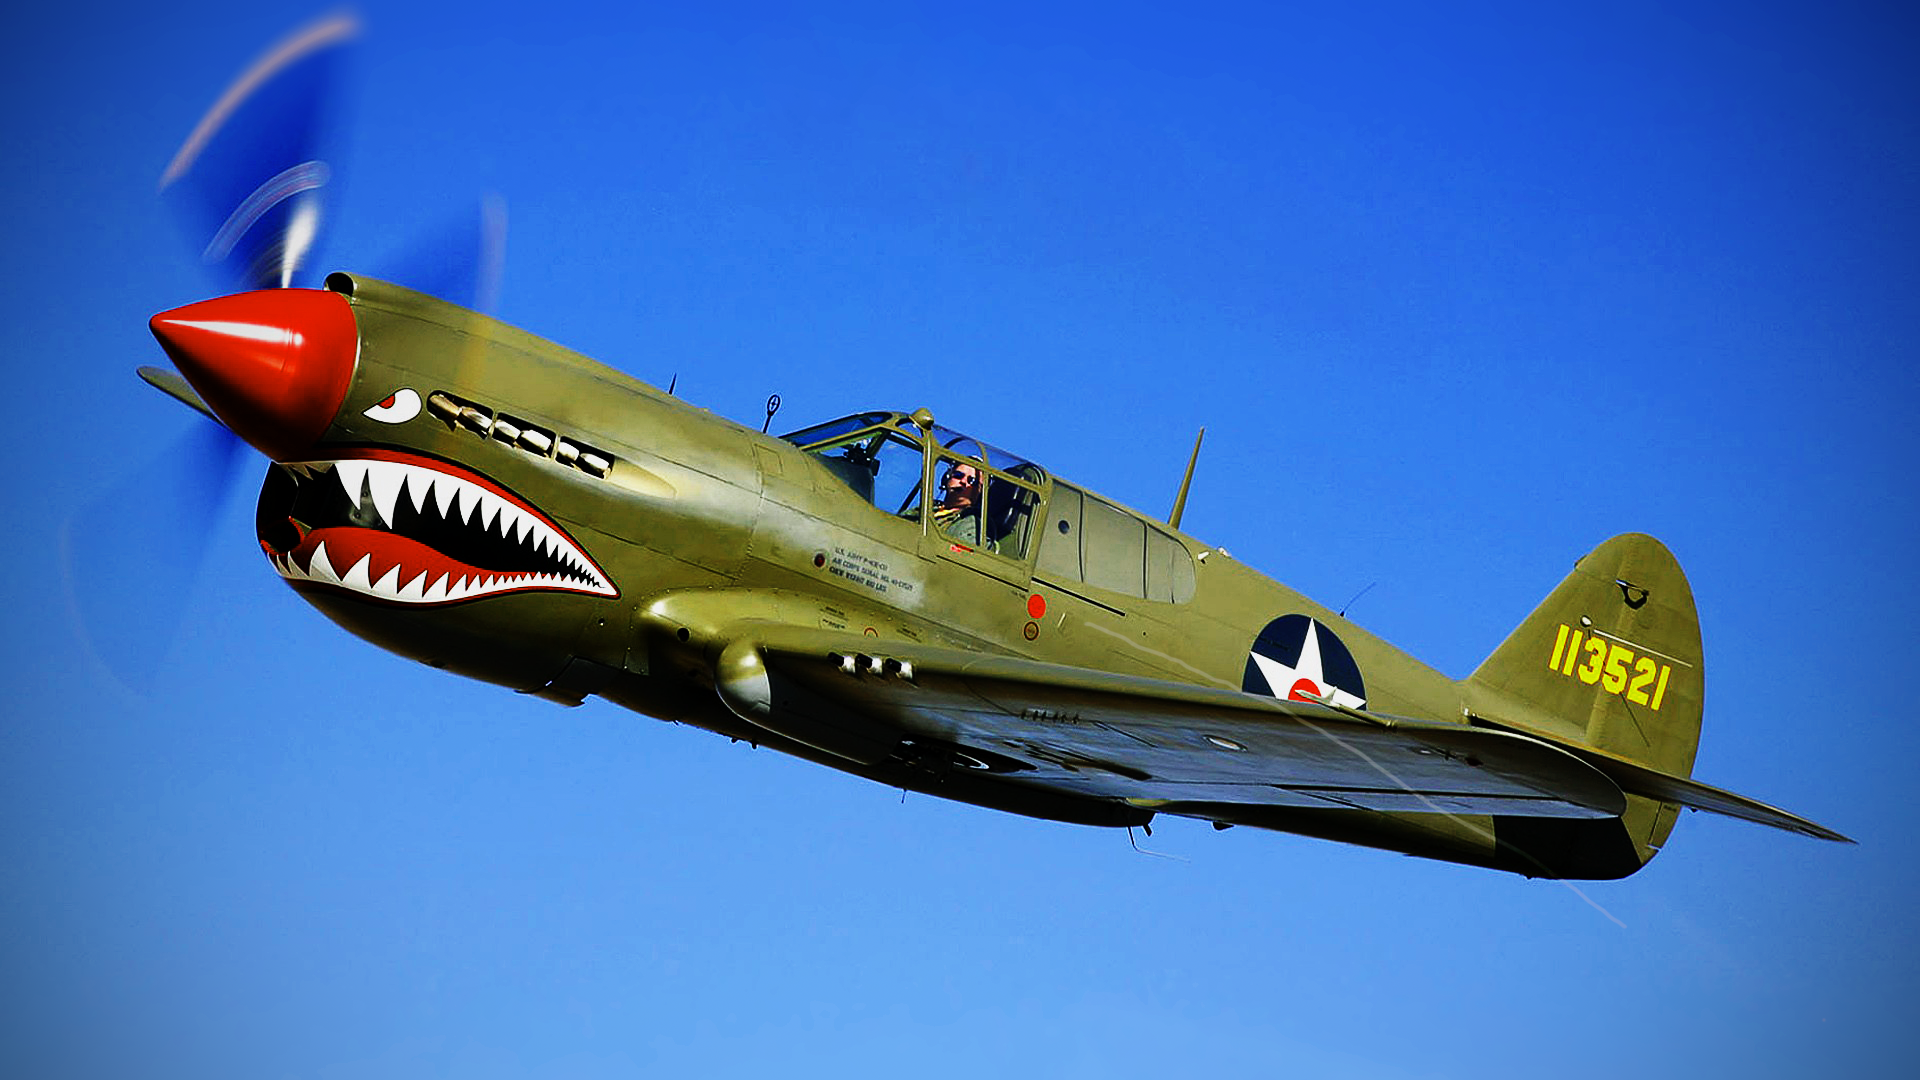 4 Curtiss P-40 Warhawk HD Wallpapers | Backgrounds ...